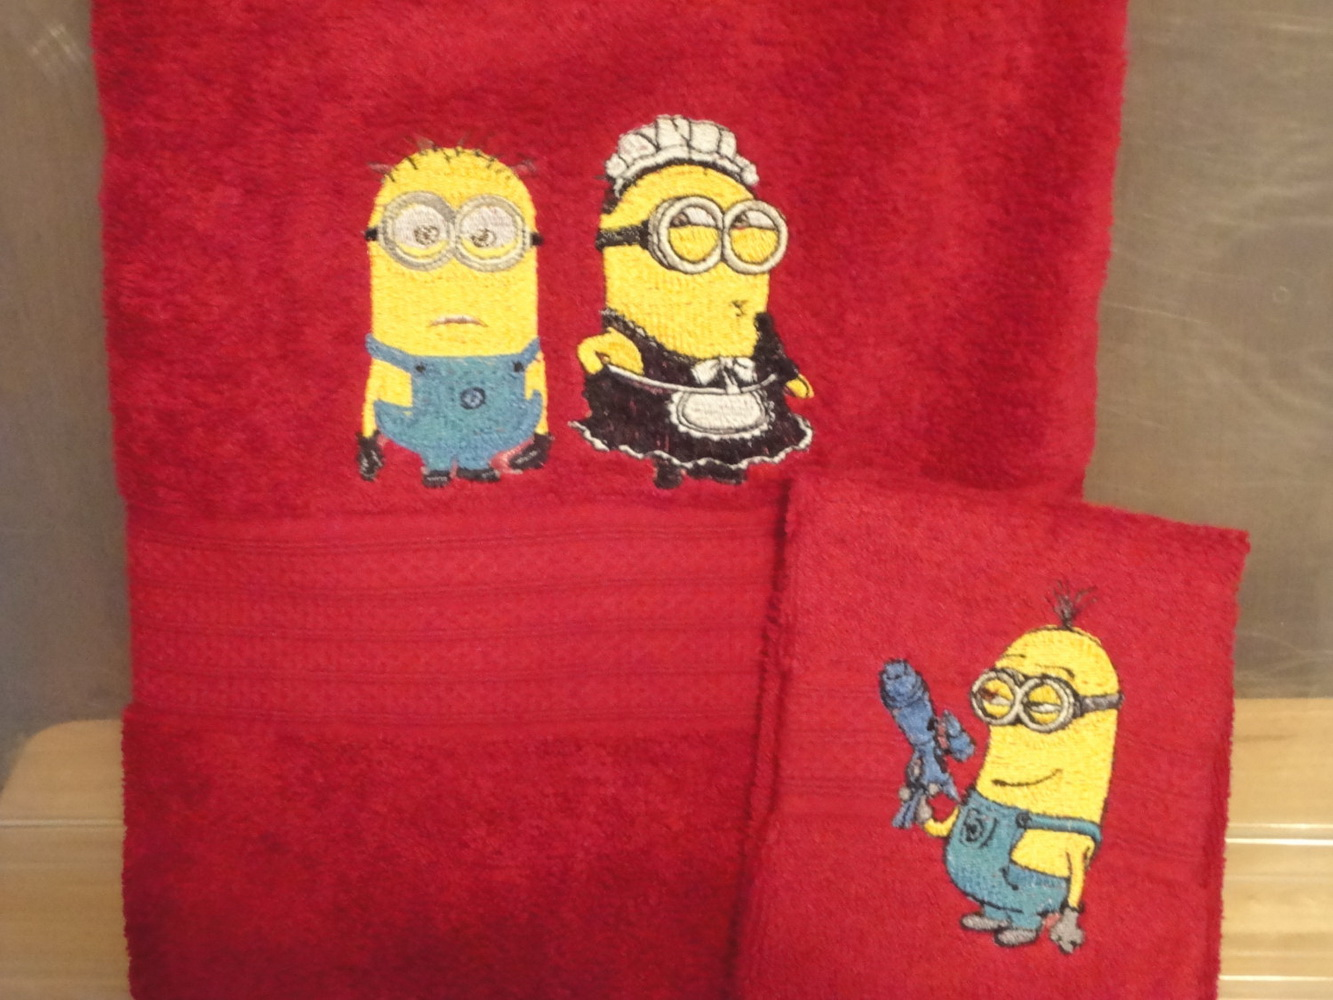 Despicable Me designs on towel2